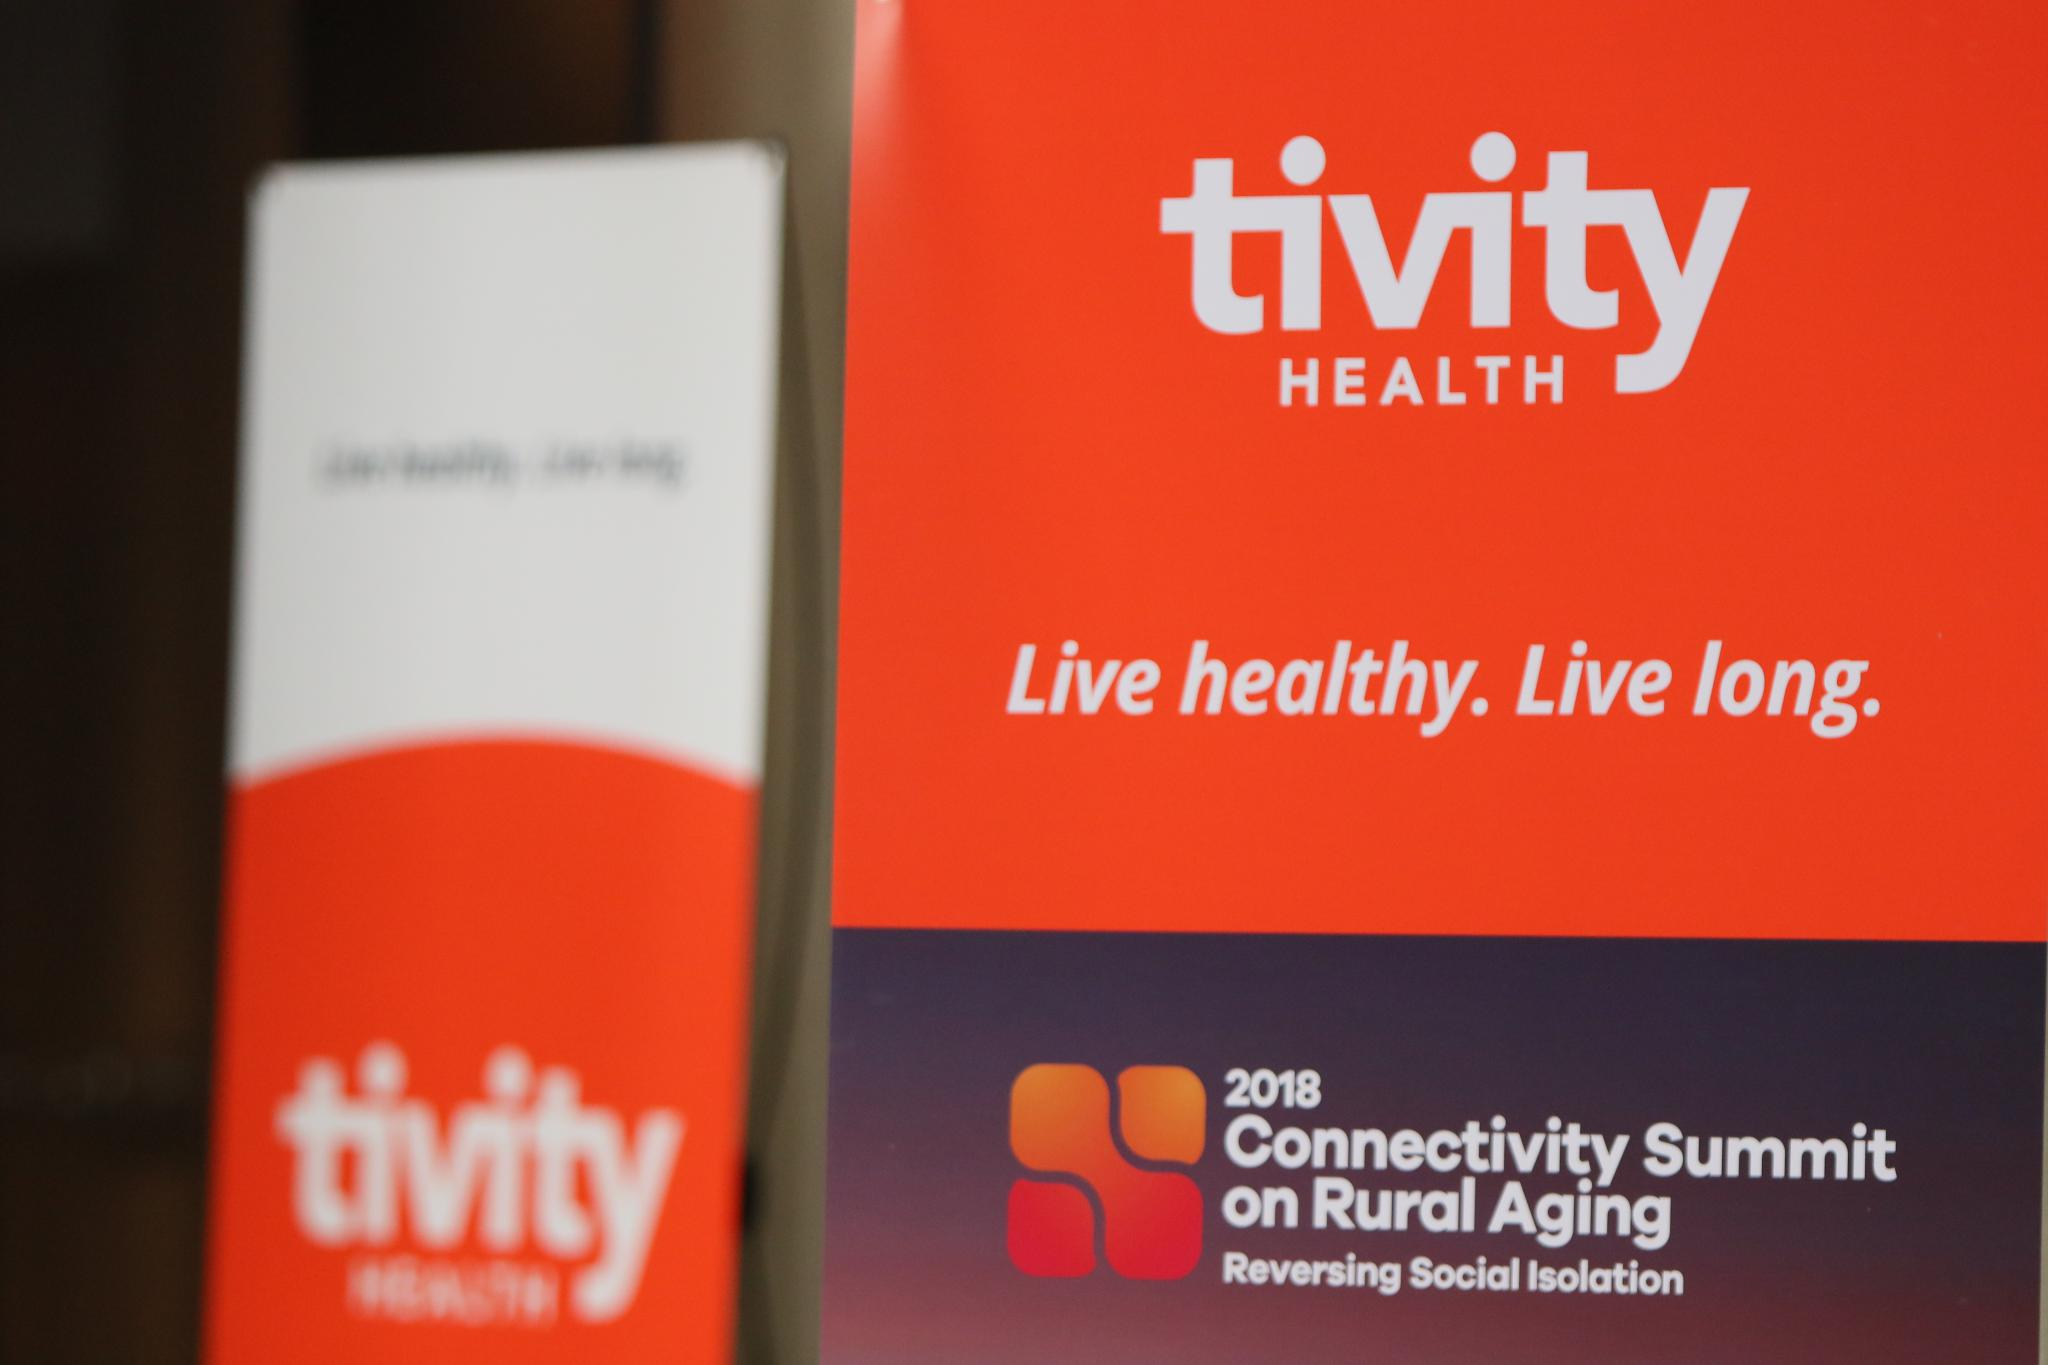 Second Annual Rural Aging Summit Brings Focus to Reversing Social Isolation